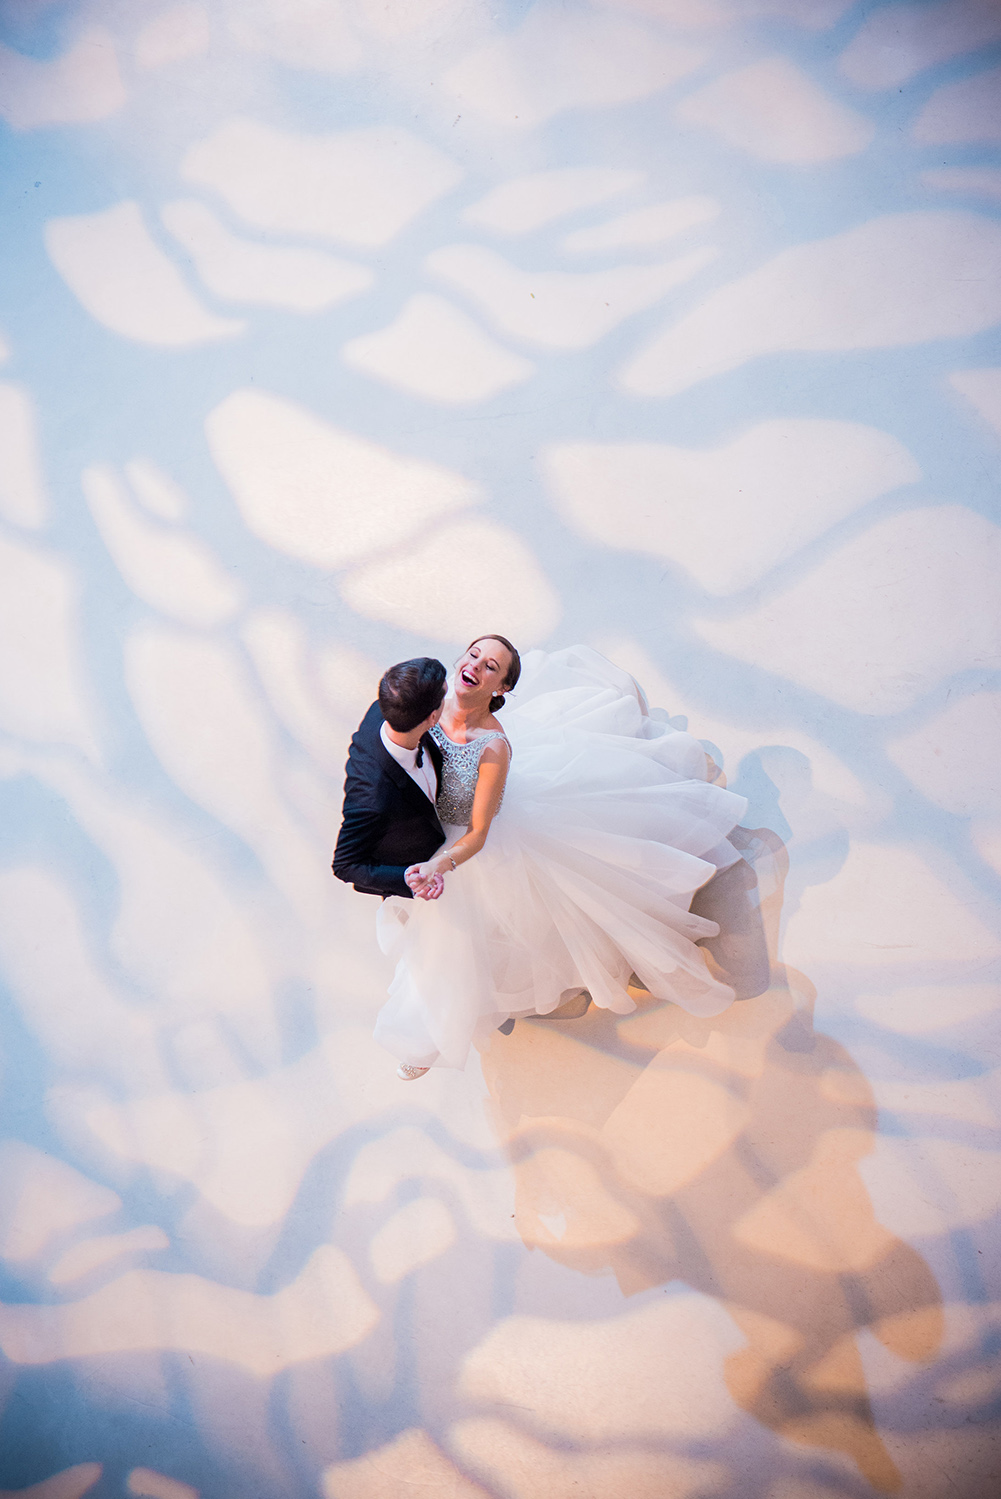 first-dance-venue-610-chicago-weddings-planner-engaging-events-by-ali